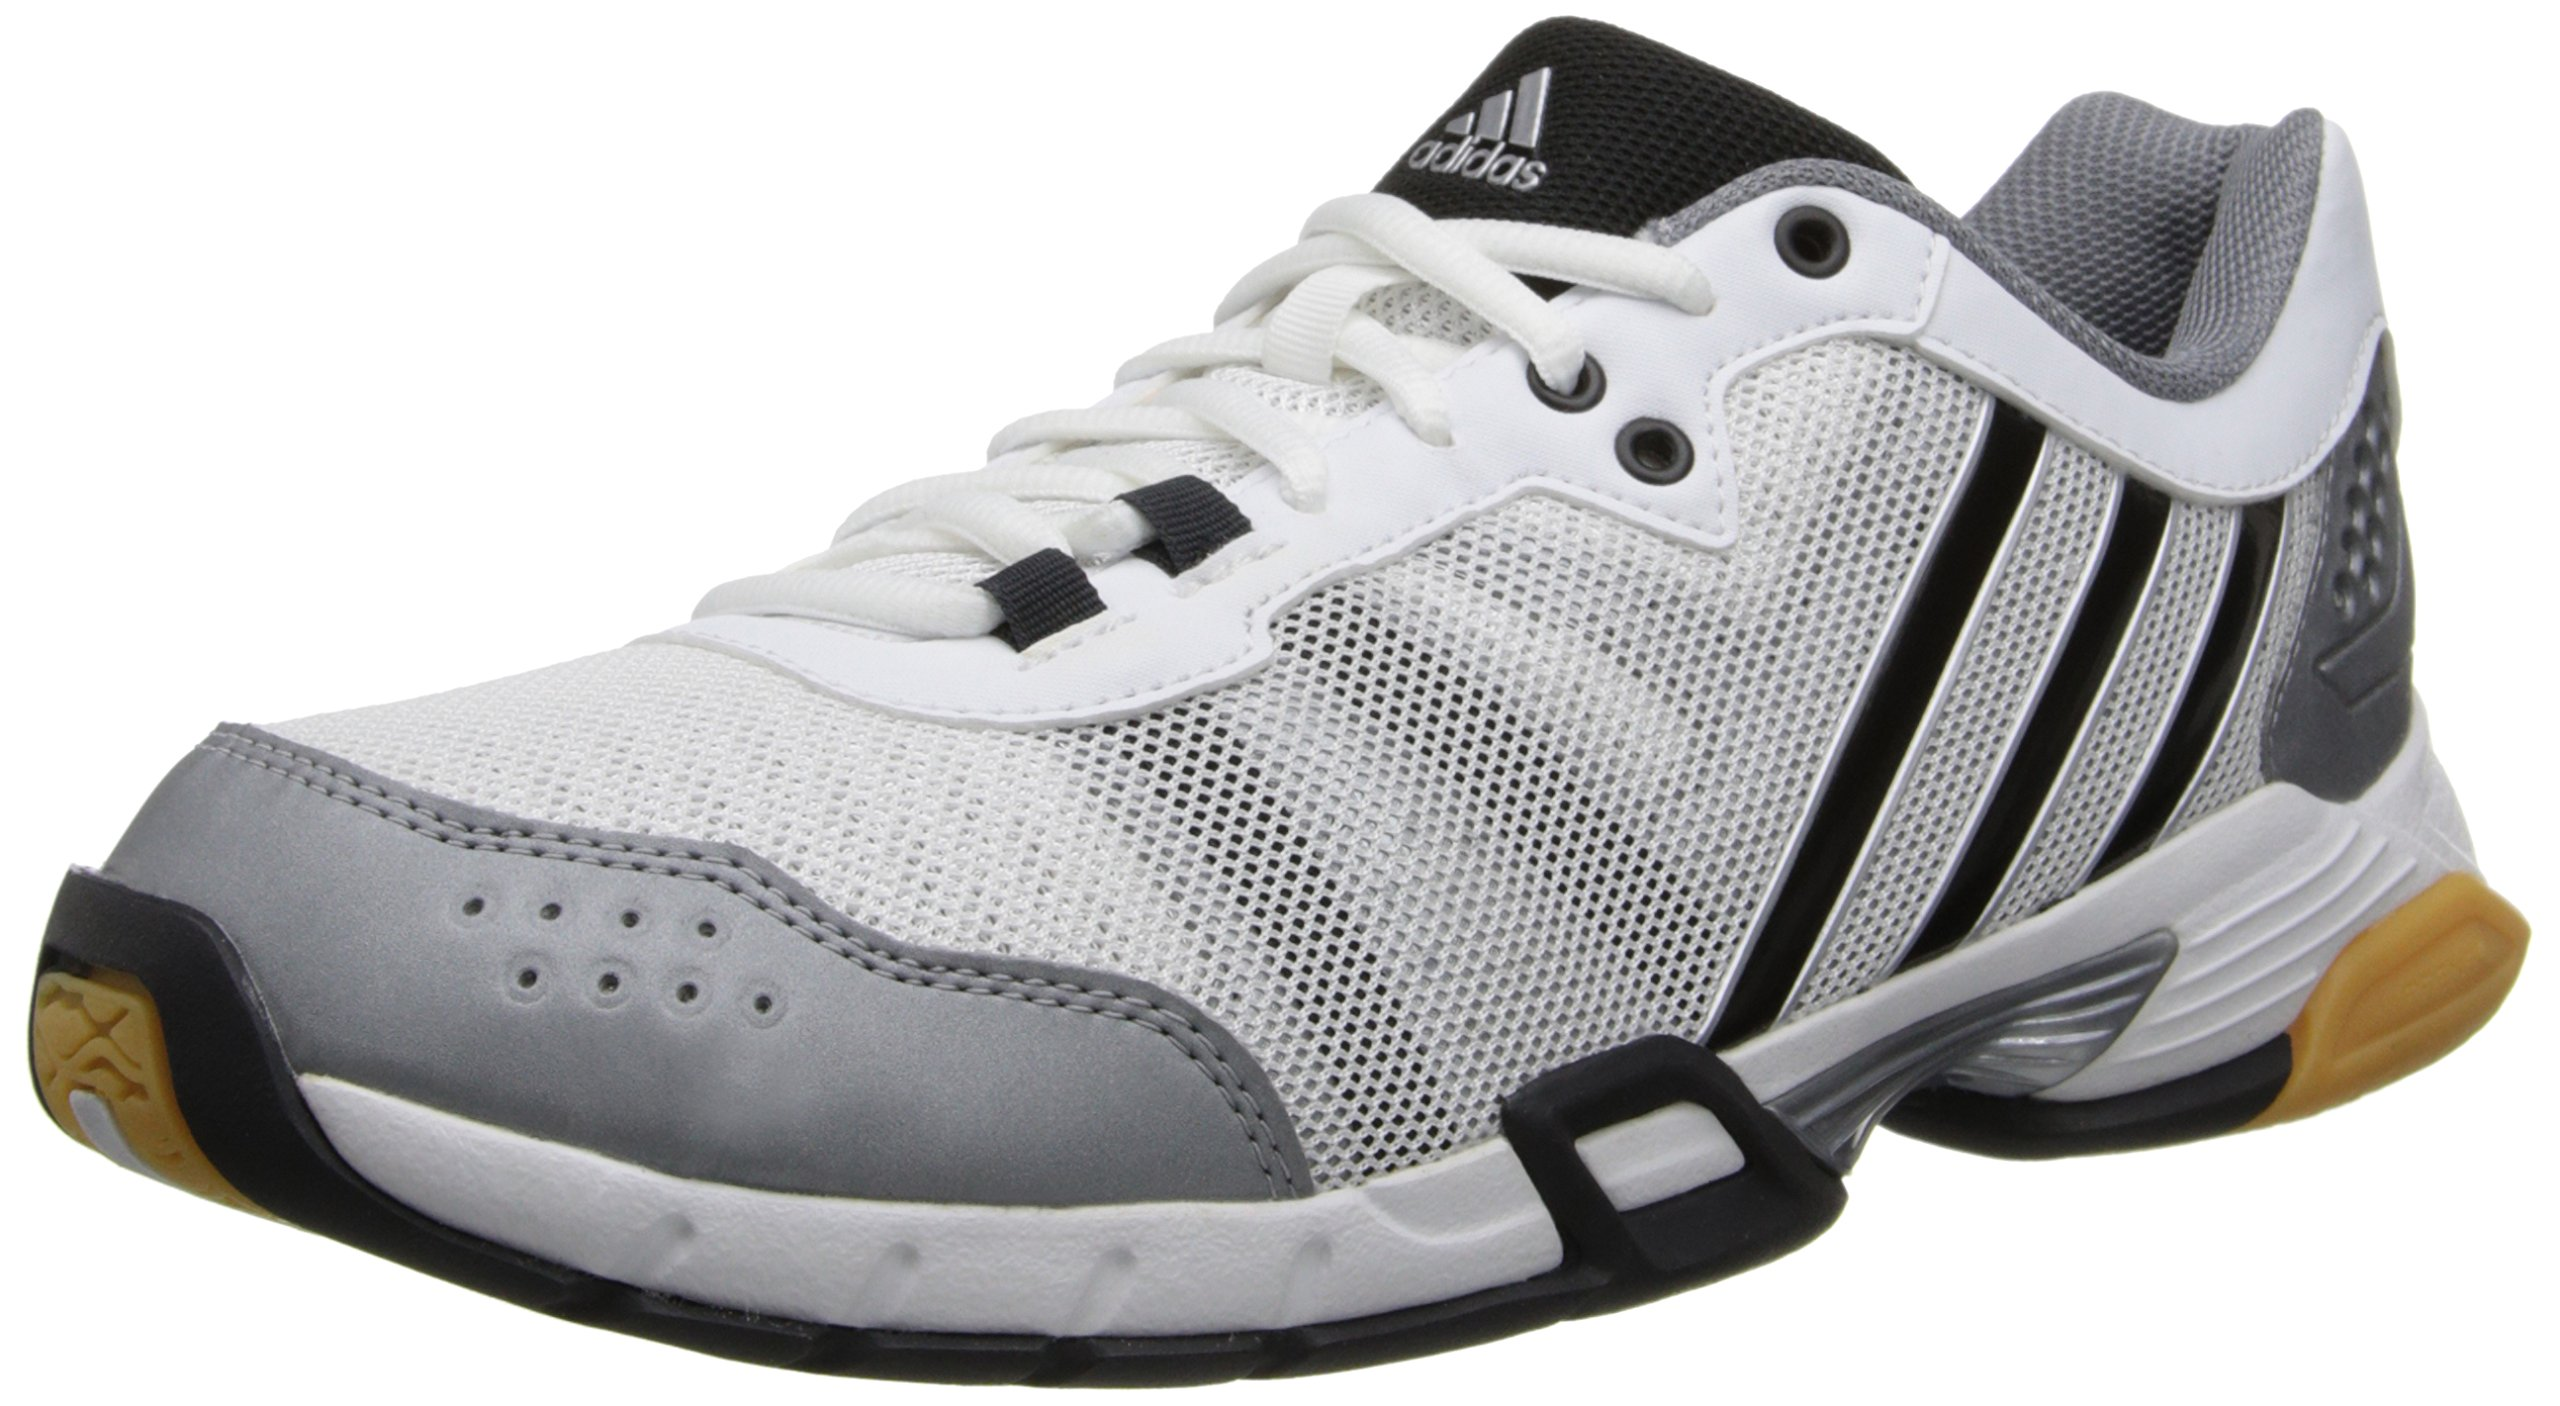 adidas Performance Women's Volley Team 2 W Volleyball Shoe, White/Grey/Black, 10.5 M US